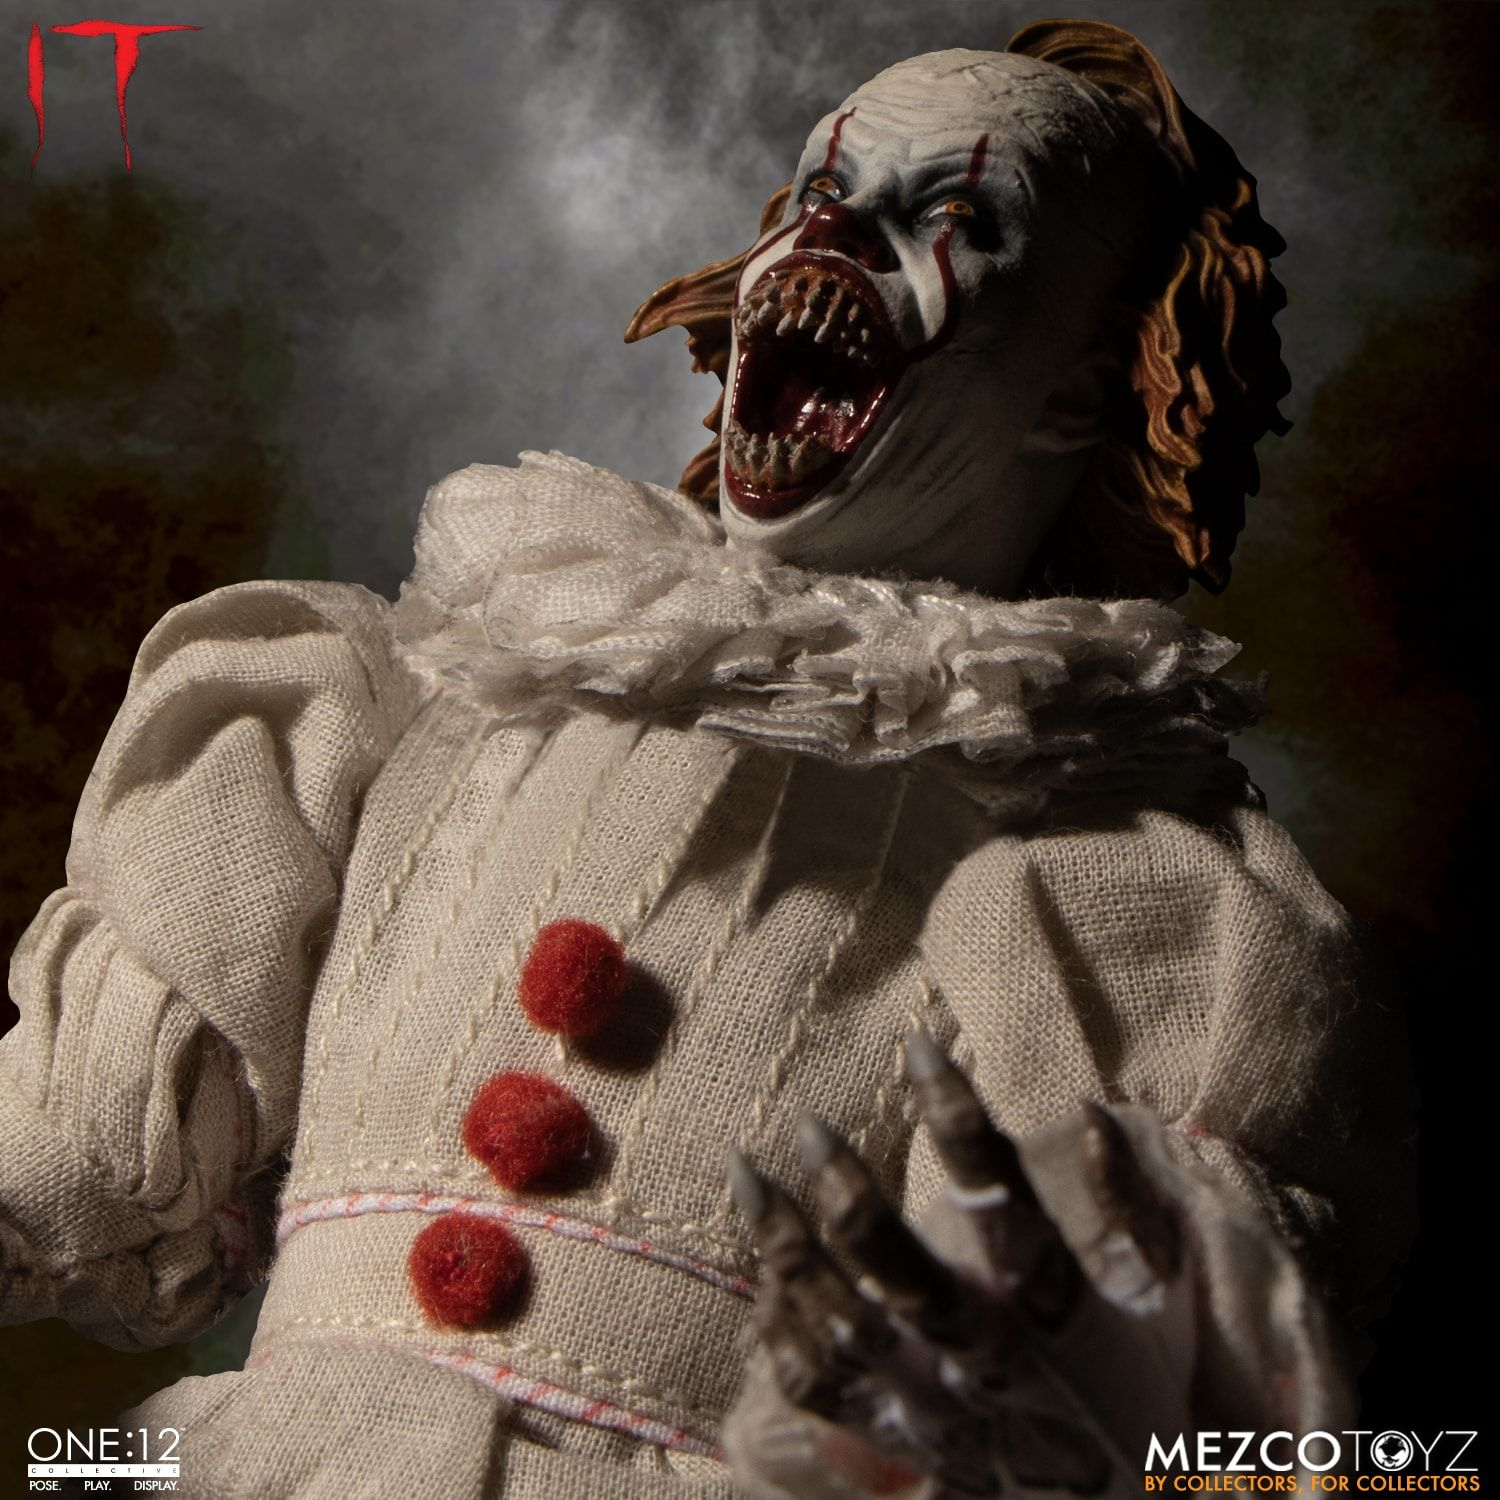 Mezco - One:12 Collective - IT (2017) - Pennywise